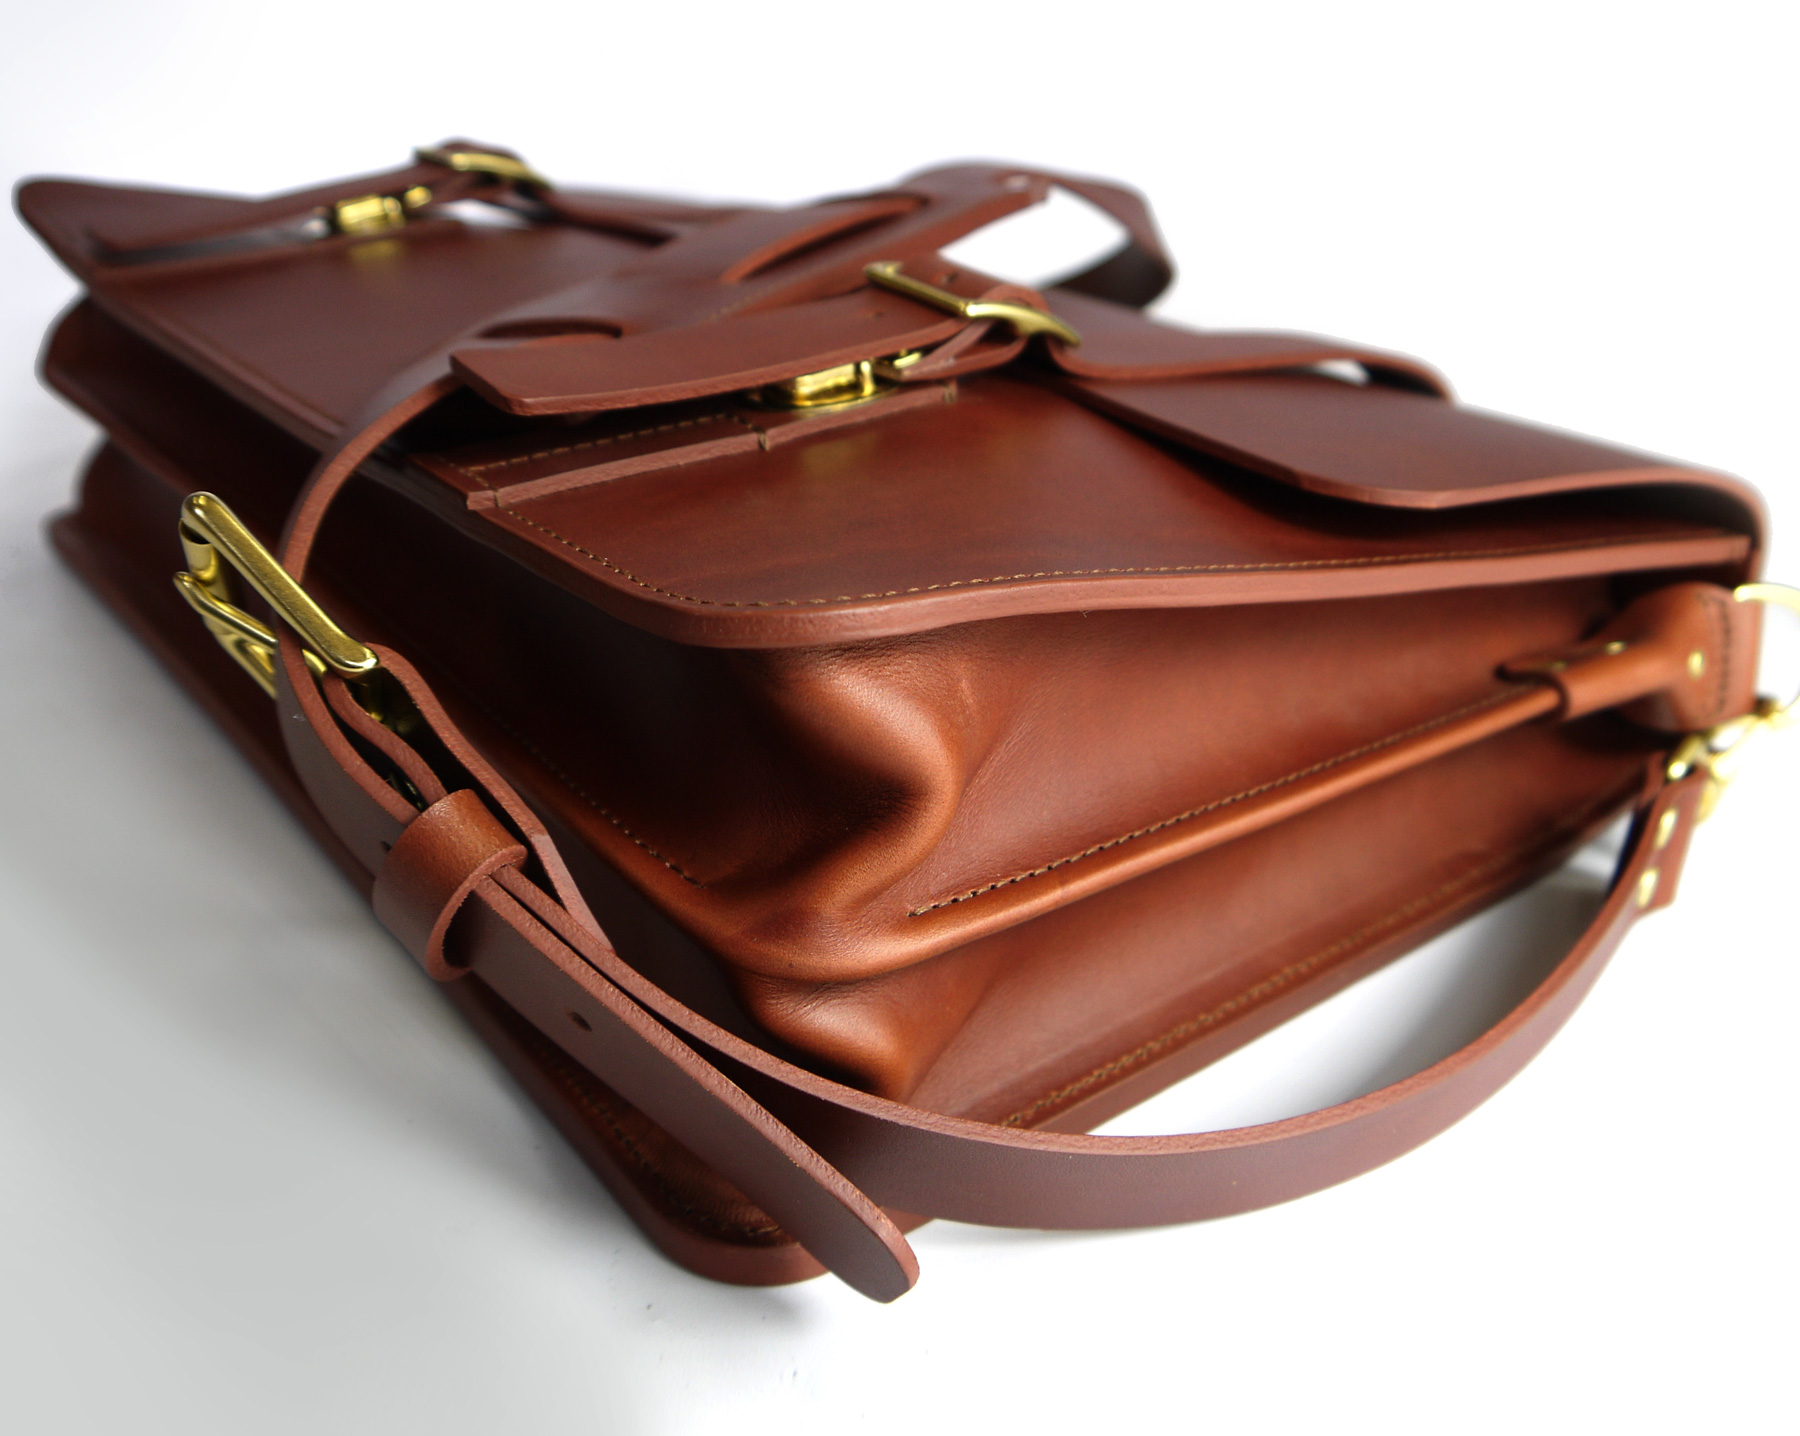 Leather Gusseted Bag